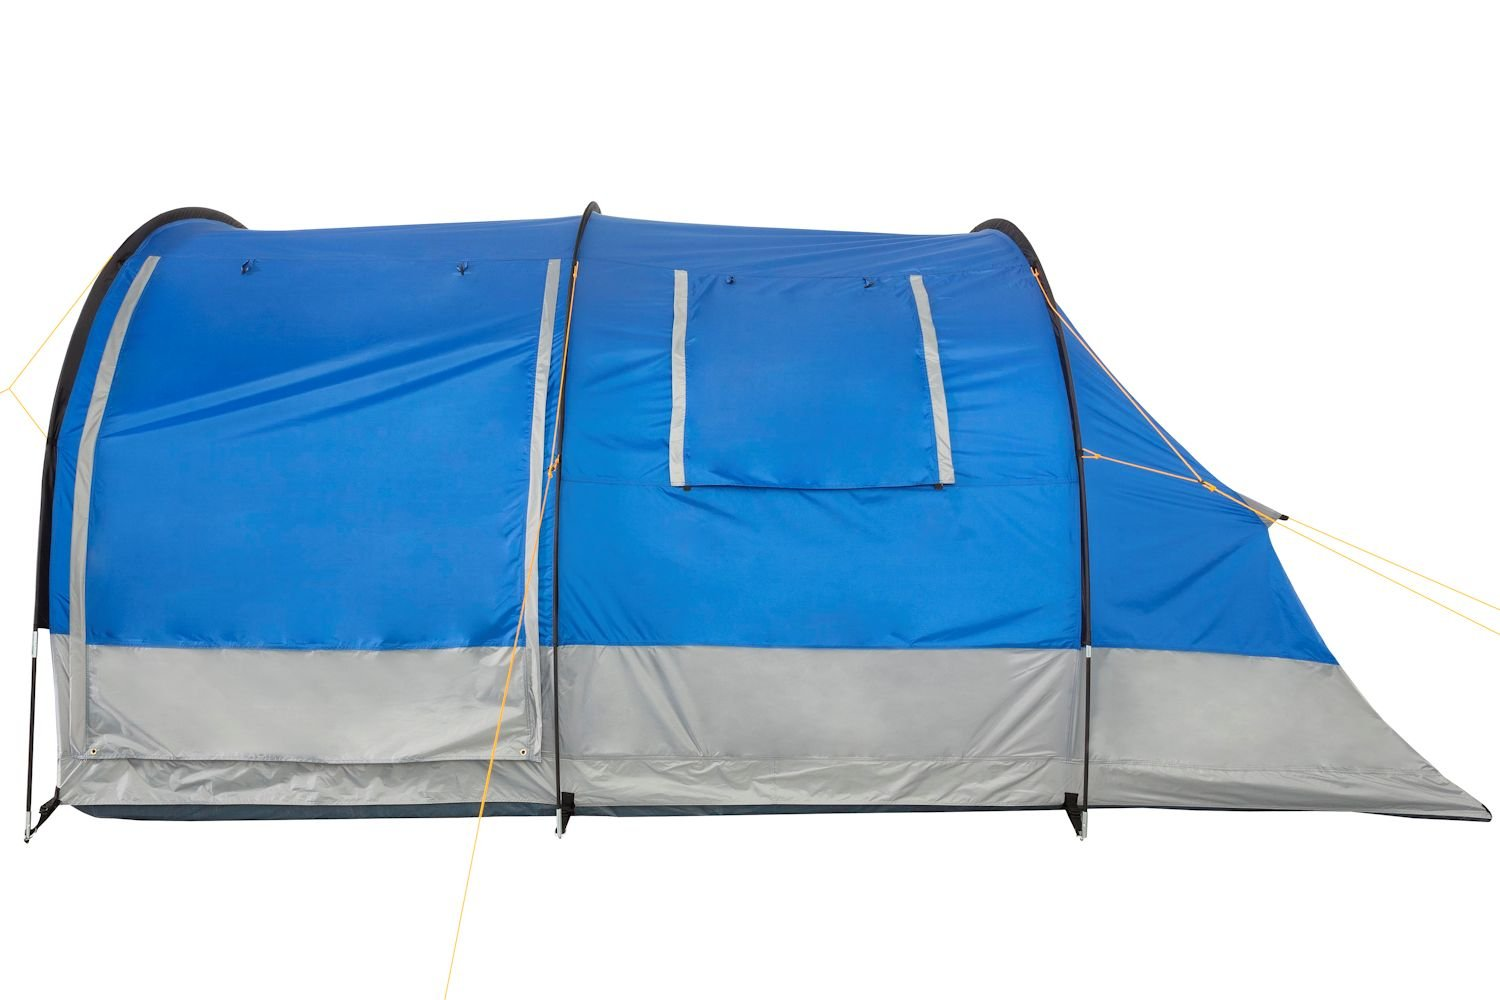 CampFeuer - Tunnel Tent, 4 Person, 410x250x190 cm, blue/grey 3